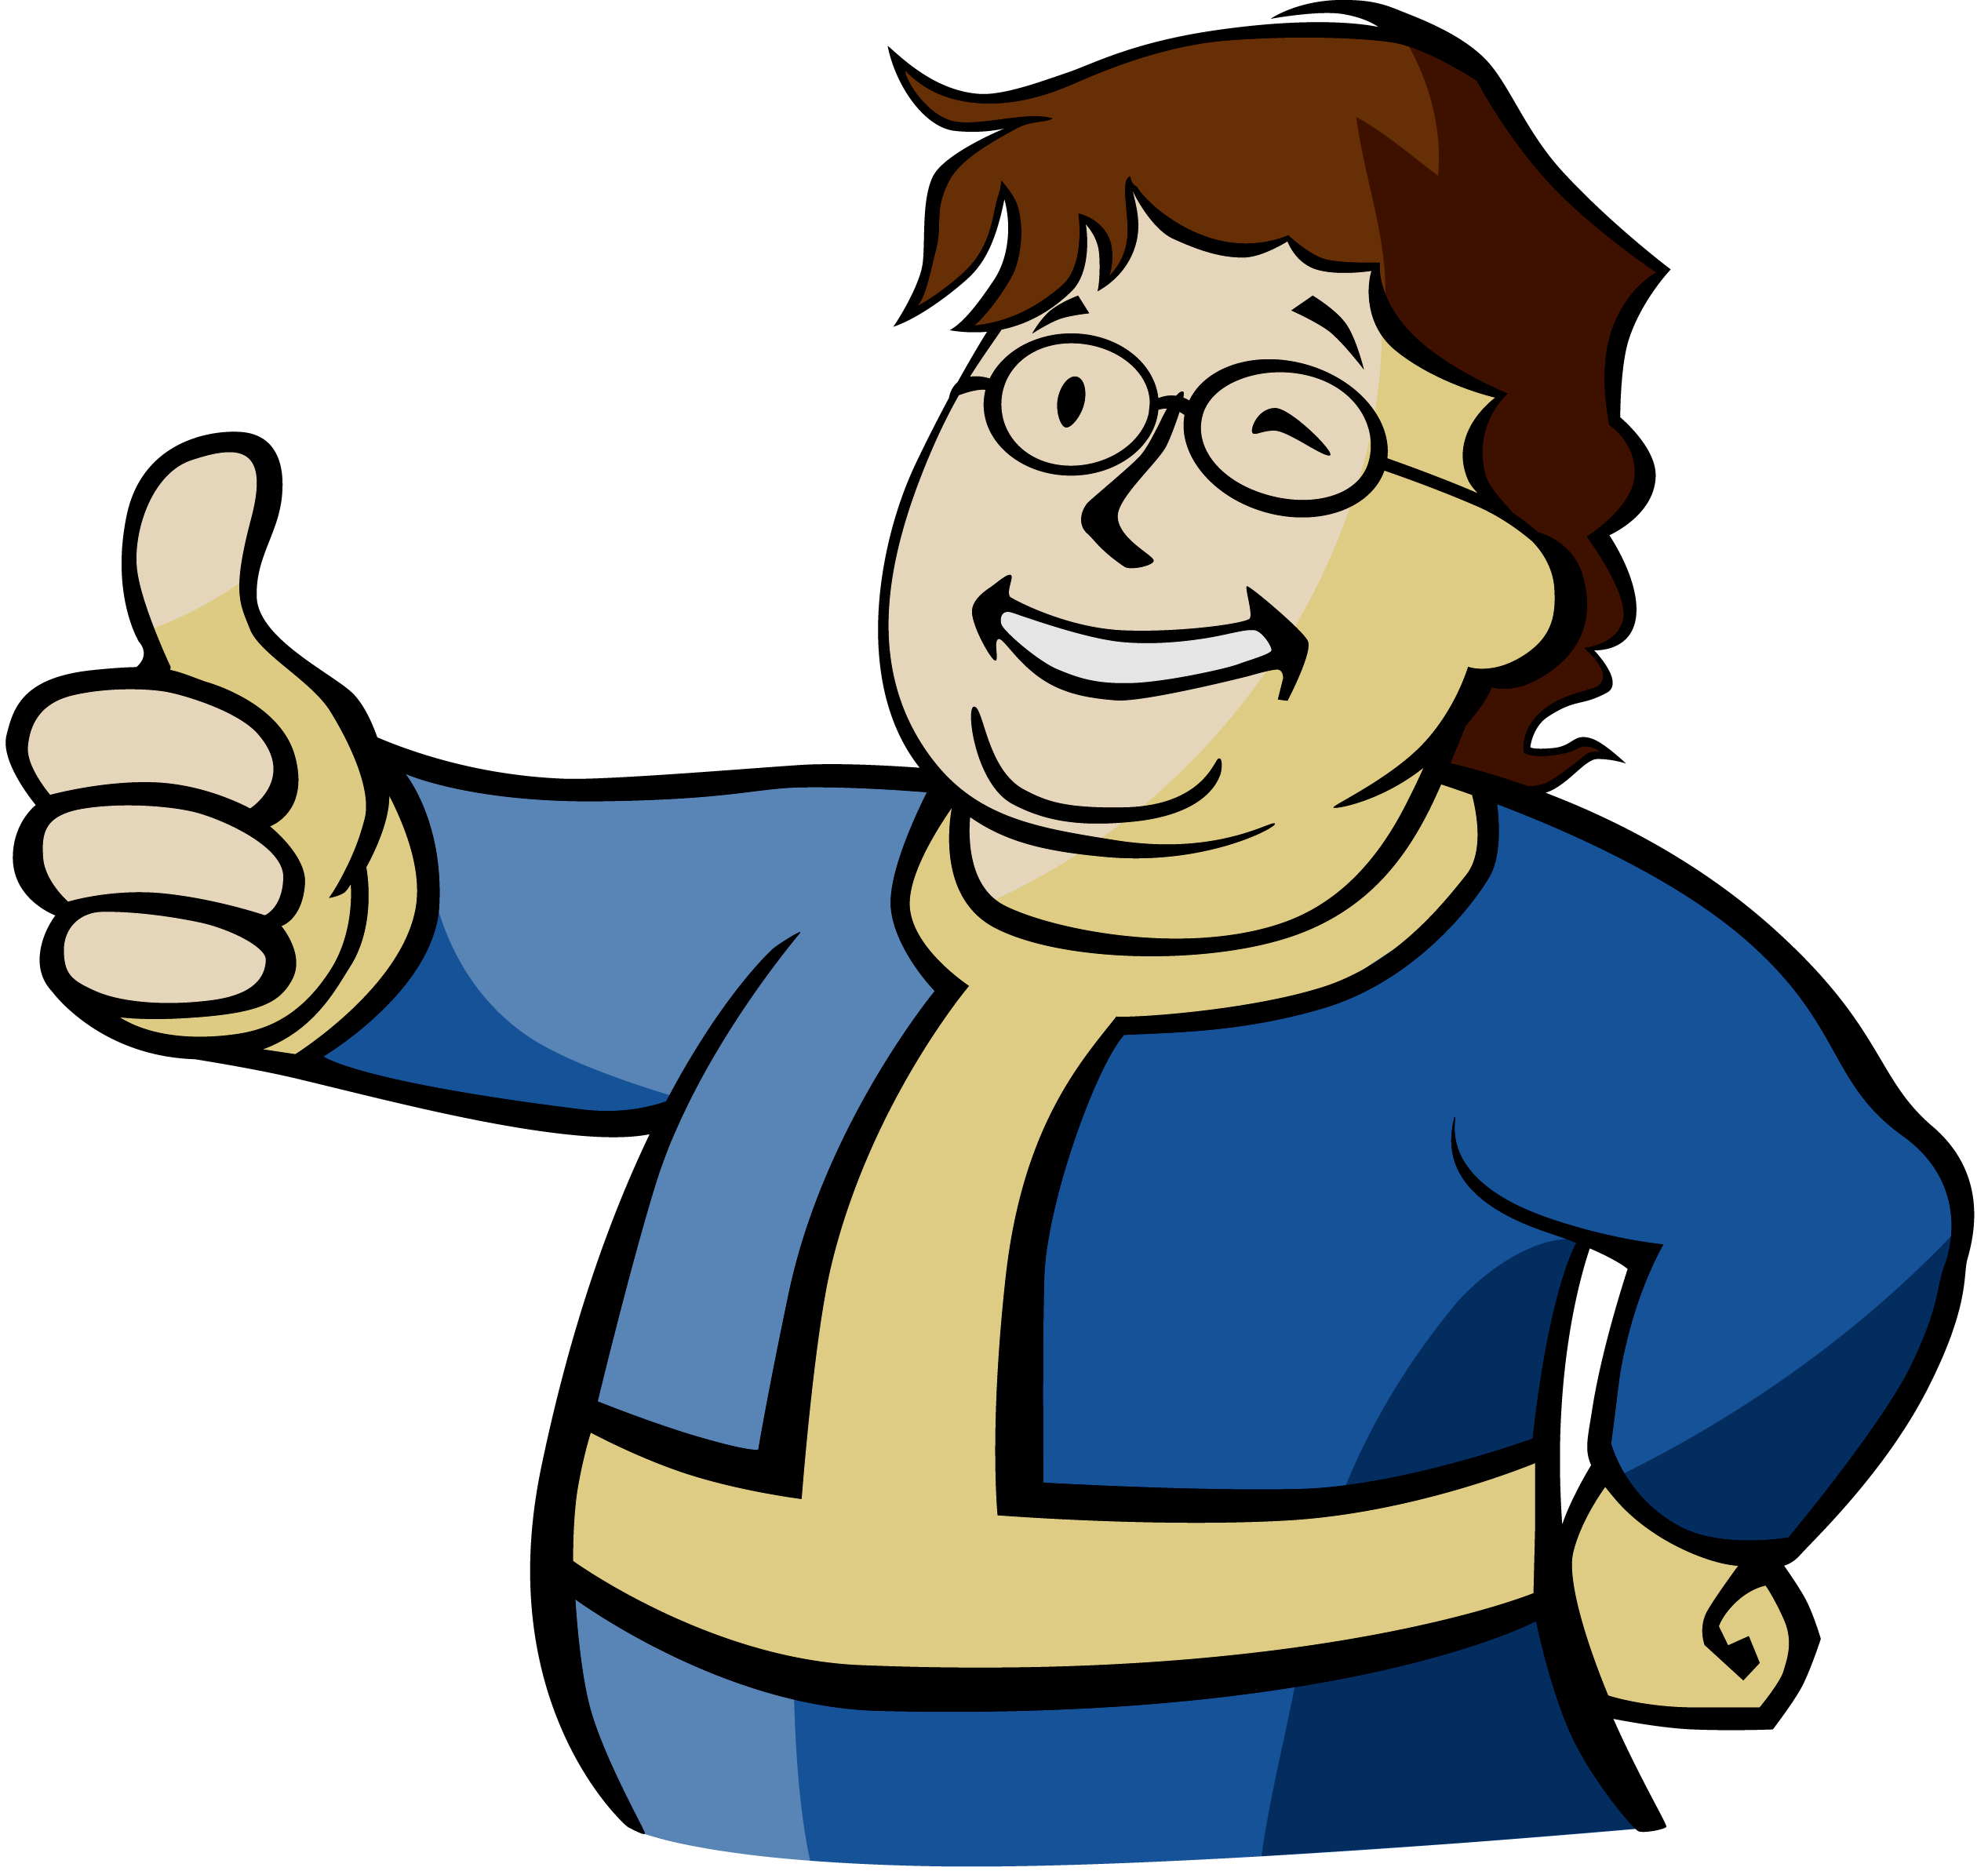 Vault tec clipart clip library download Welcome to the Steam-Boy 3000 from Valve-Tec. After 200 years of ... clip library download